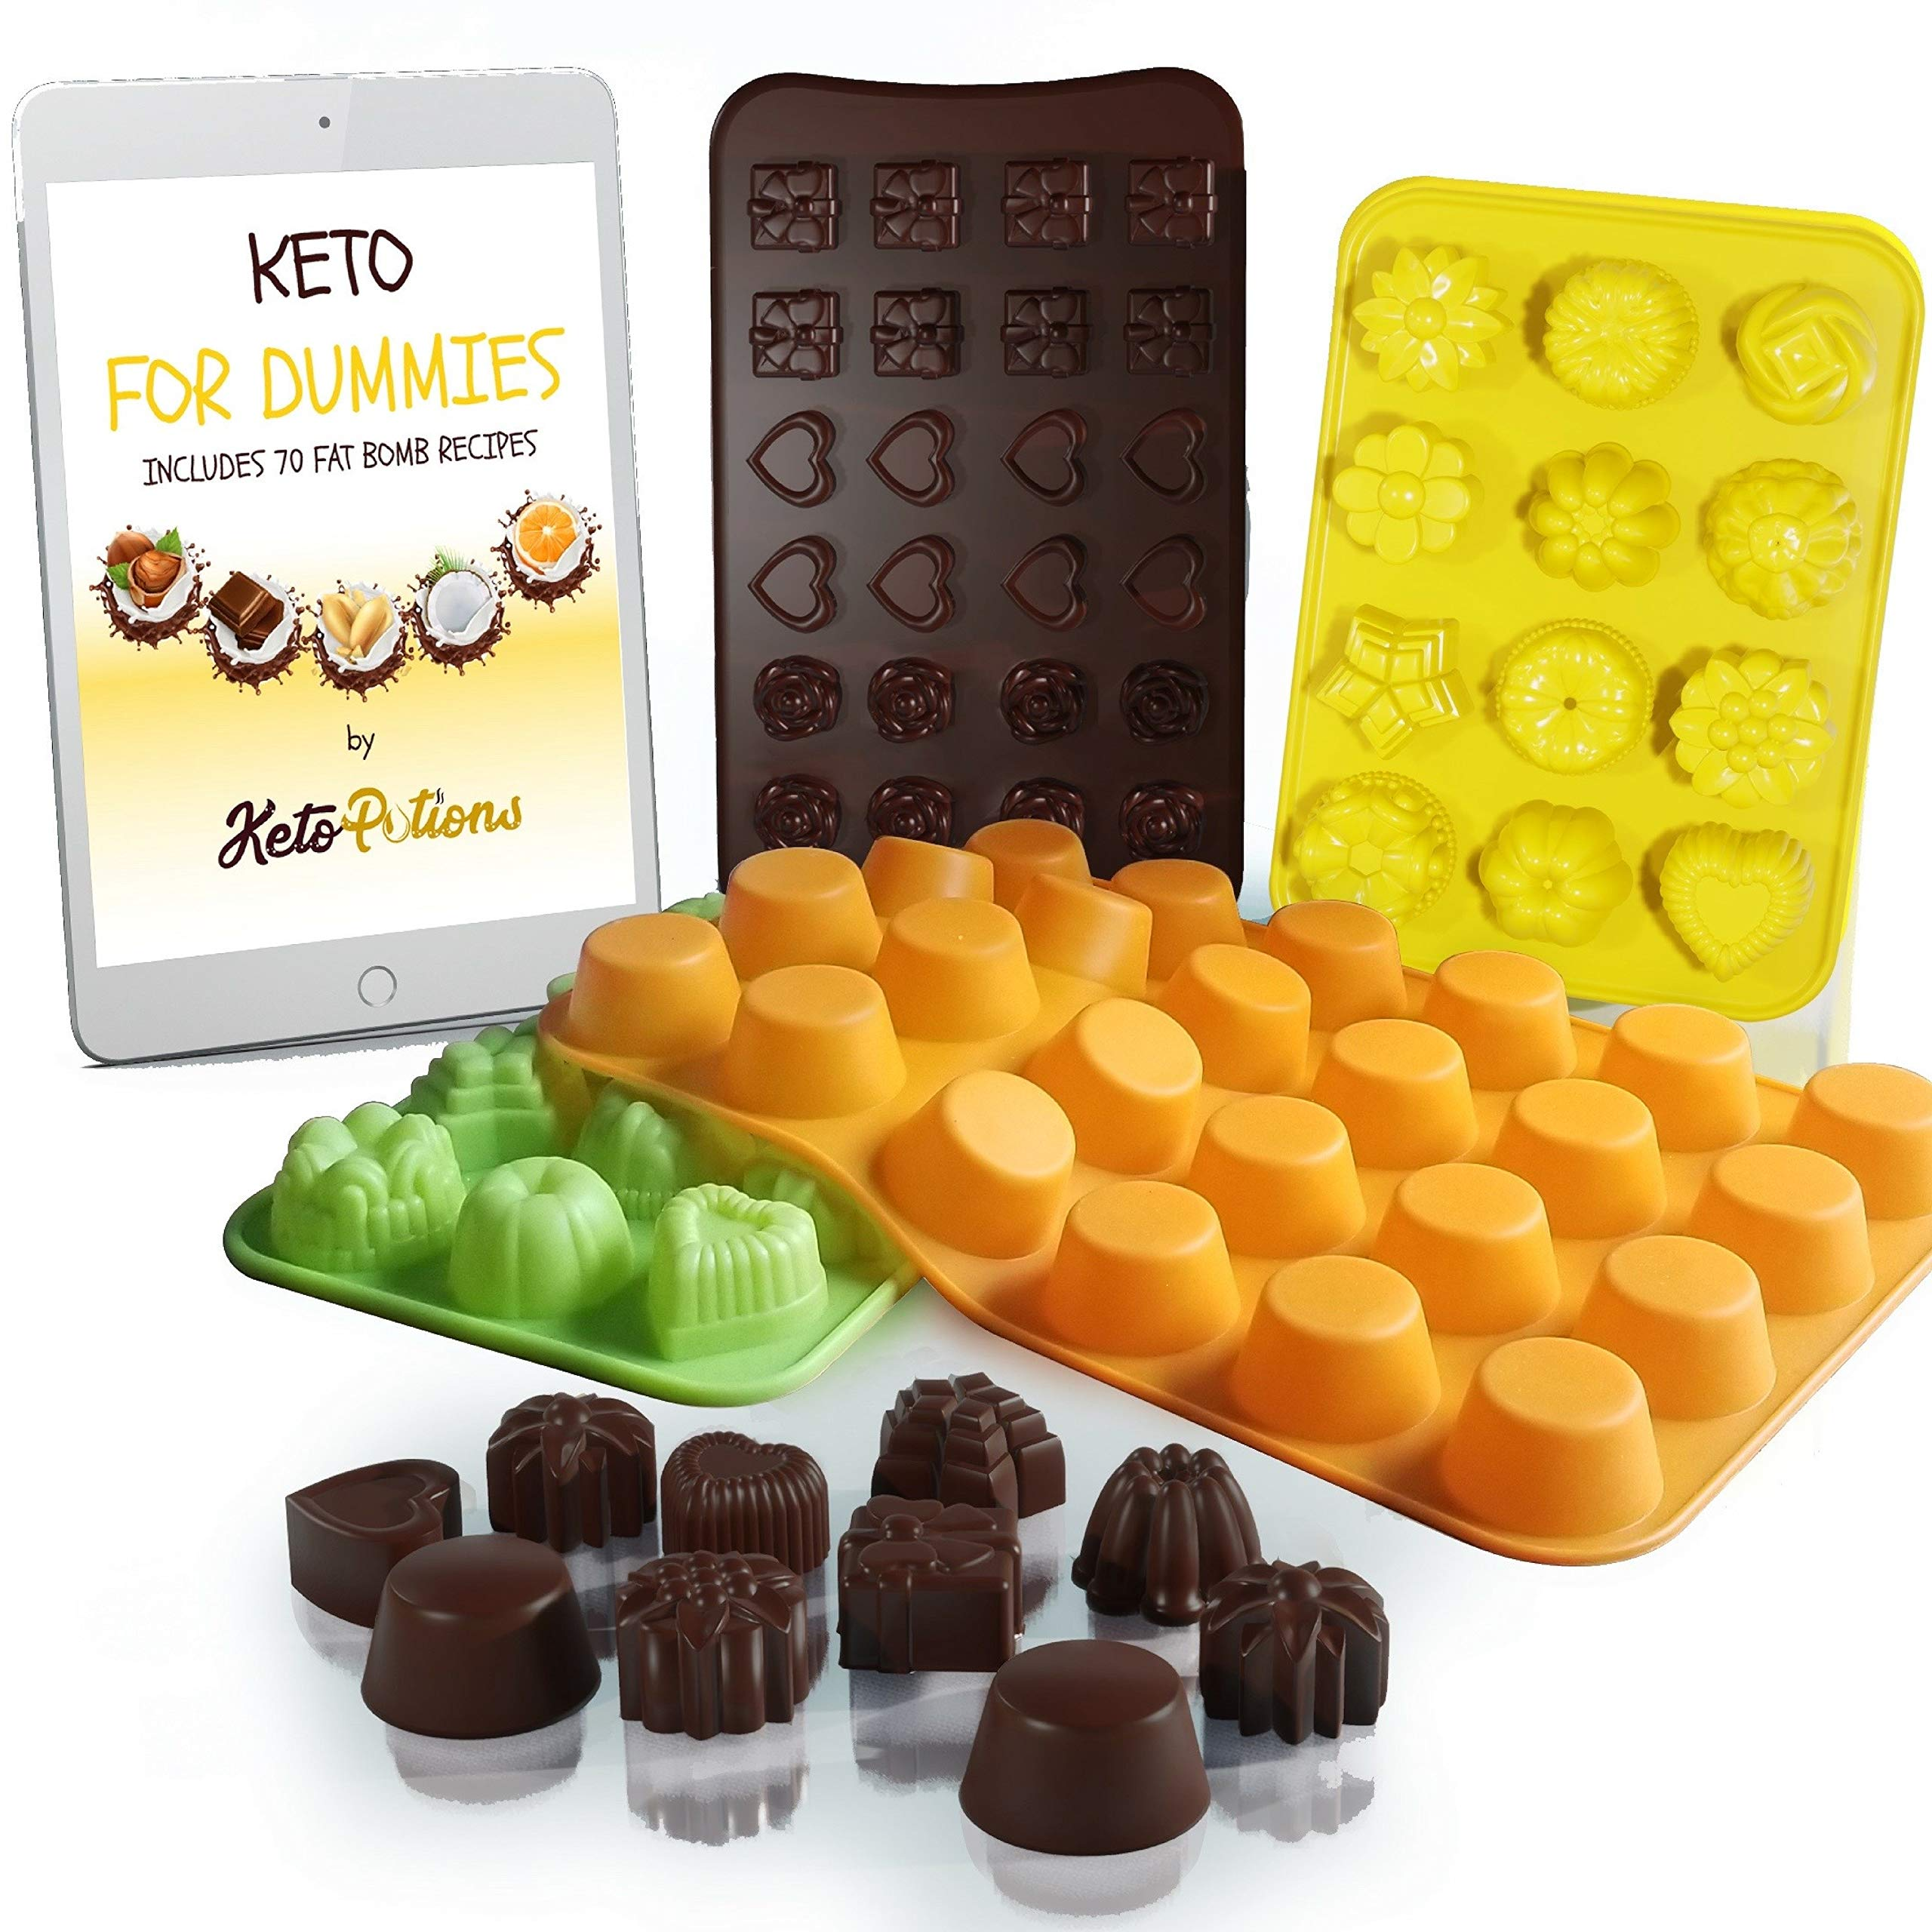 Keto Fat Bombs Silicone Molds - Cookbook: 70 Fat Bomb Keto Snacks Foods Low Carb Chocolate Recipes Ebook + Silicon Cupcake Muffin Baking Cups Pan Mold by KetoPotions